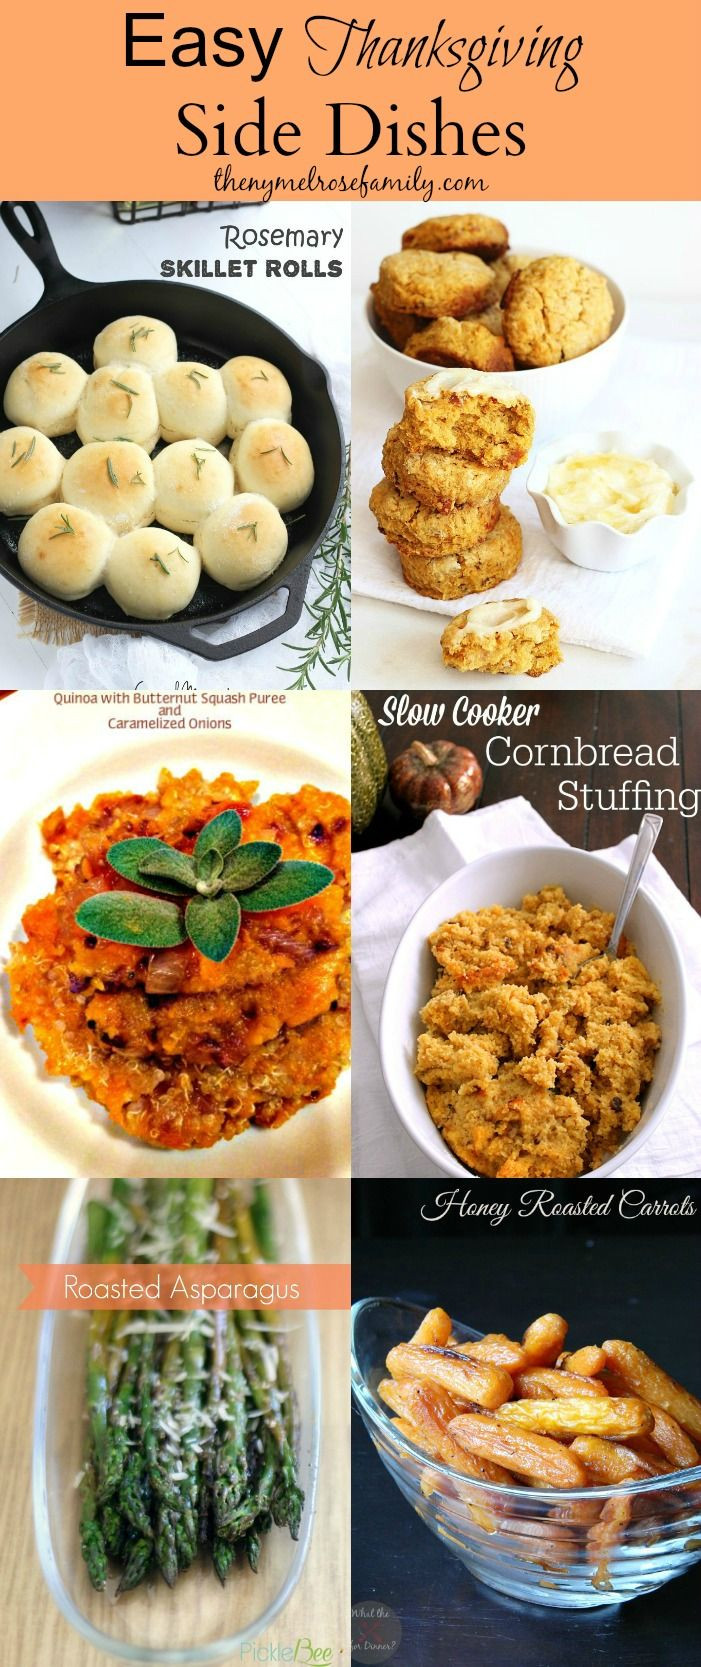 Easy Side Dishes For Thanksgiving  199 best images about Easy Thanksgiving Recipes & Crafts